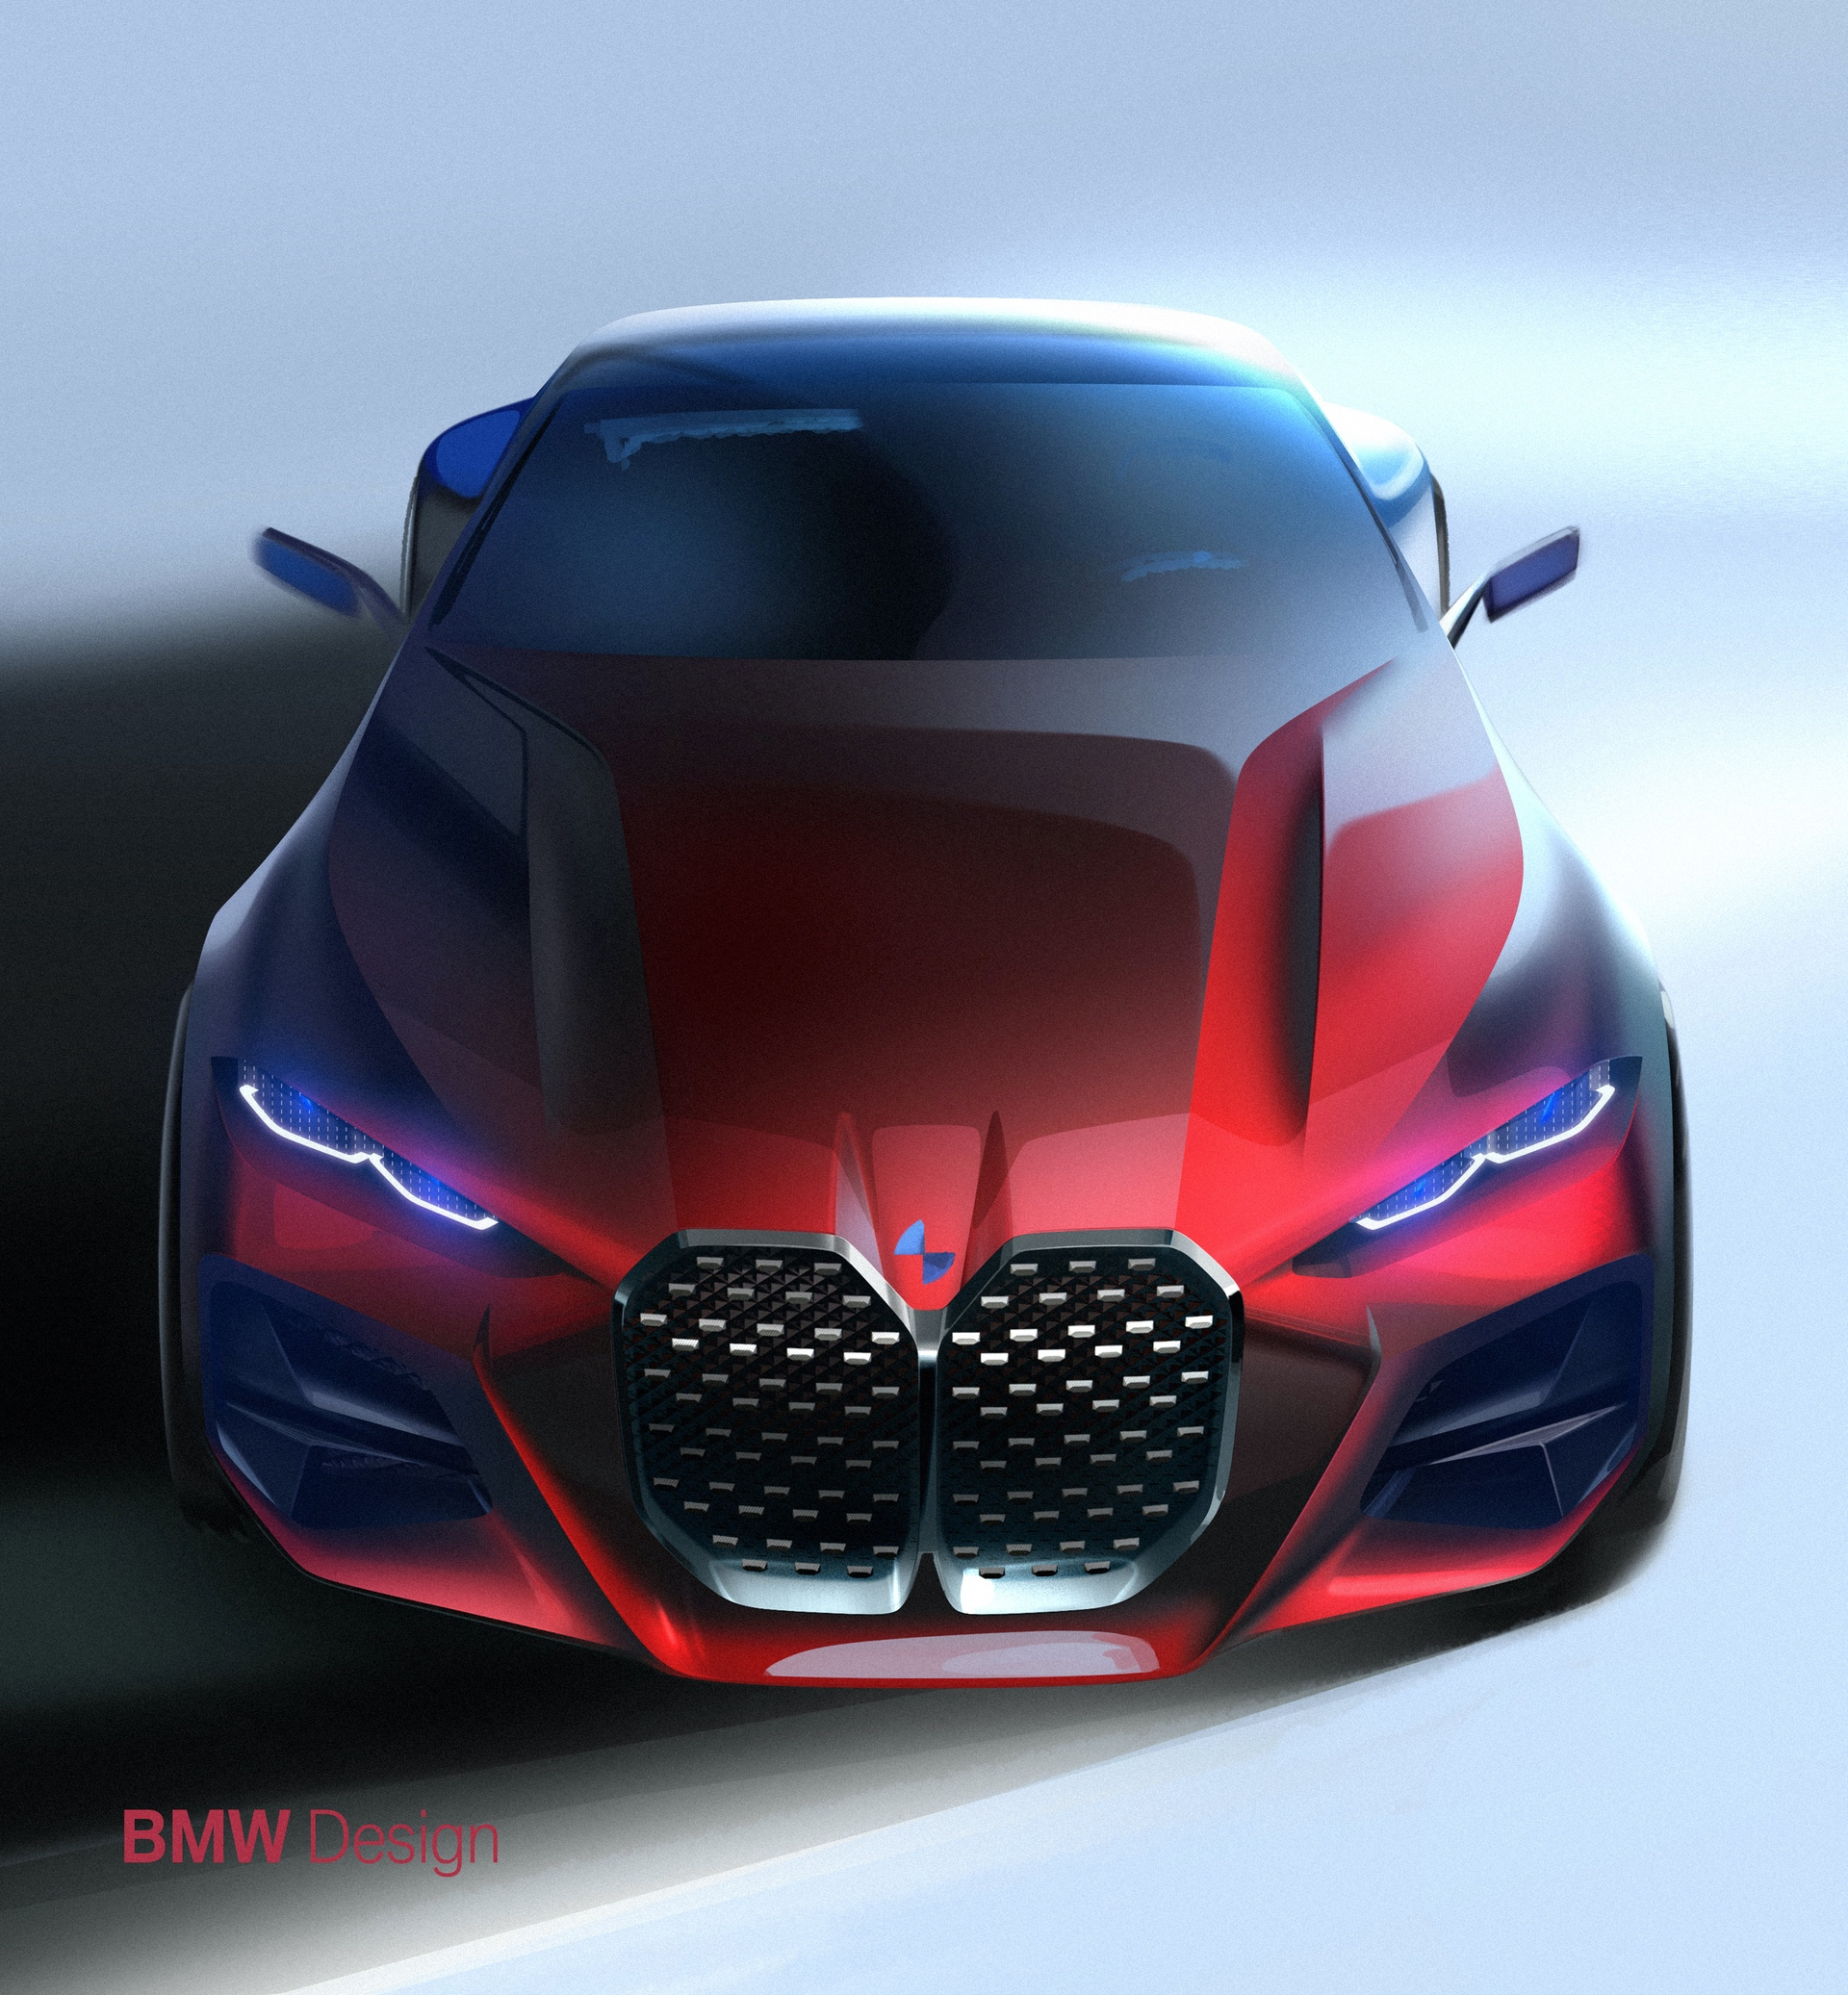 BMW Concept 4 -- A New Interpretation Of The Kidney Gril